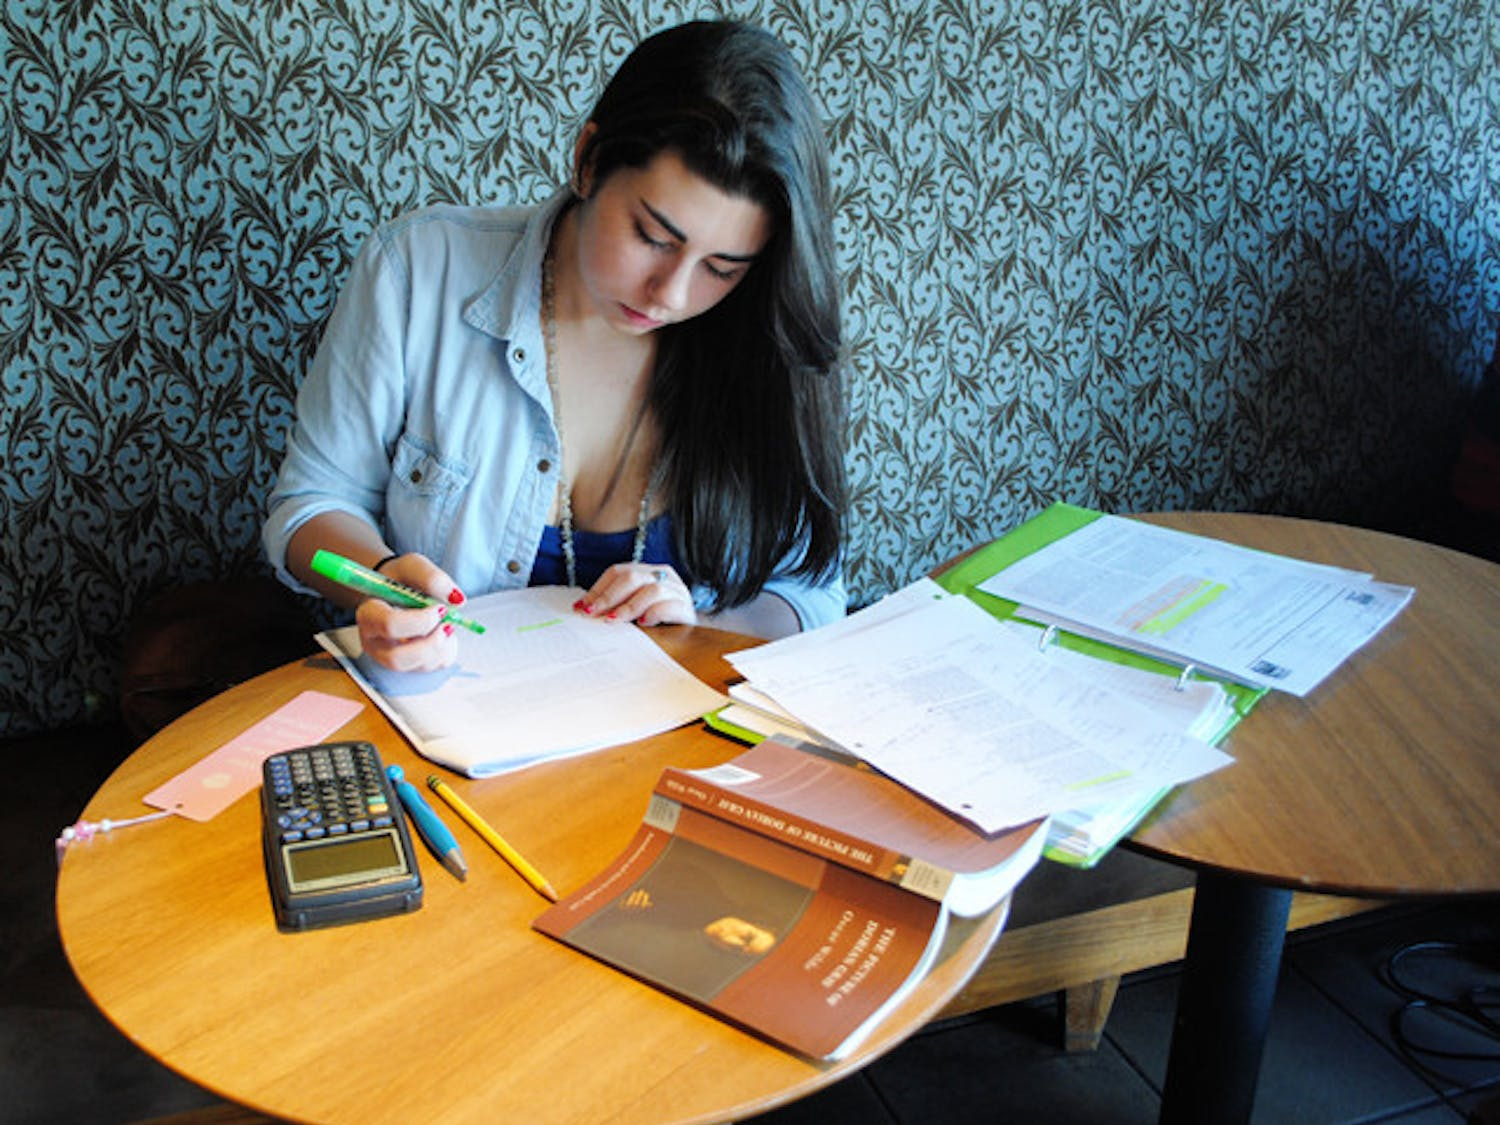 Marisol Diaz, 17, a student at South Dade Senior High School, studies and does homework for her International Baccalaureate program classes.